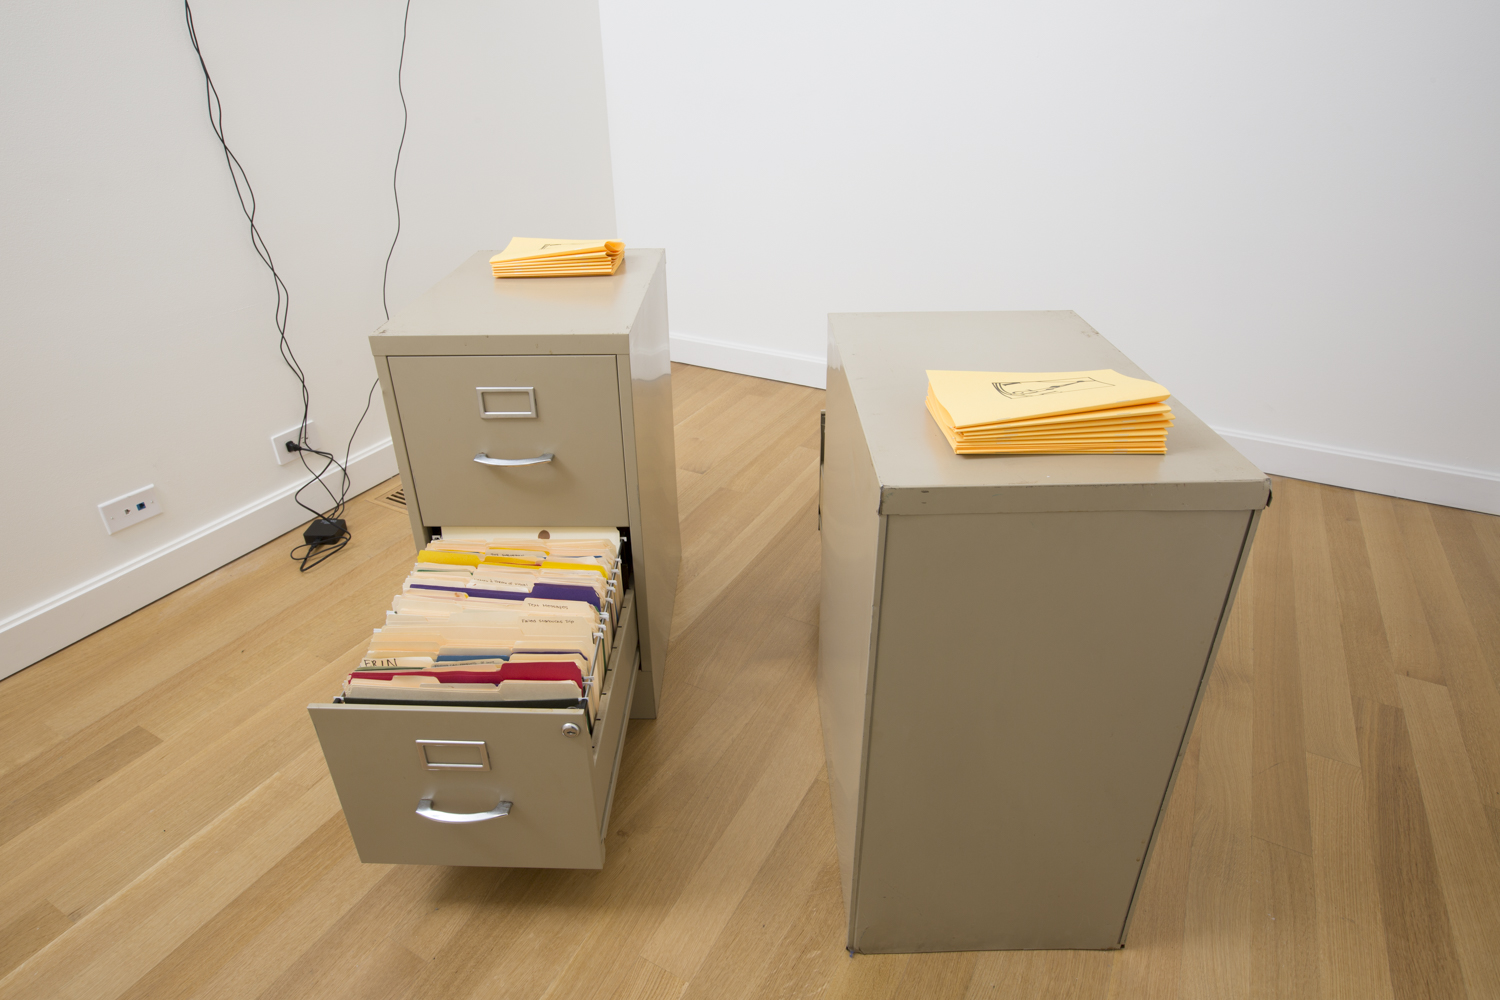 Stephen Kwok,  Lunch Break Play , 2016, and Kelly Lloyd, File Cabinet Full of Rorschach Blots Made with Acrylic Paint the Color of My Skin Inside File Folders  , 2014-15.